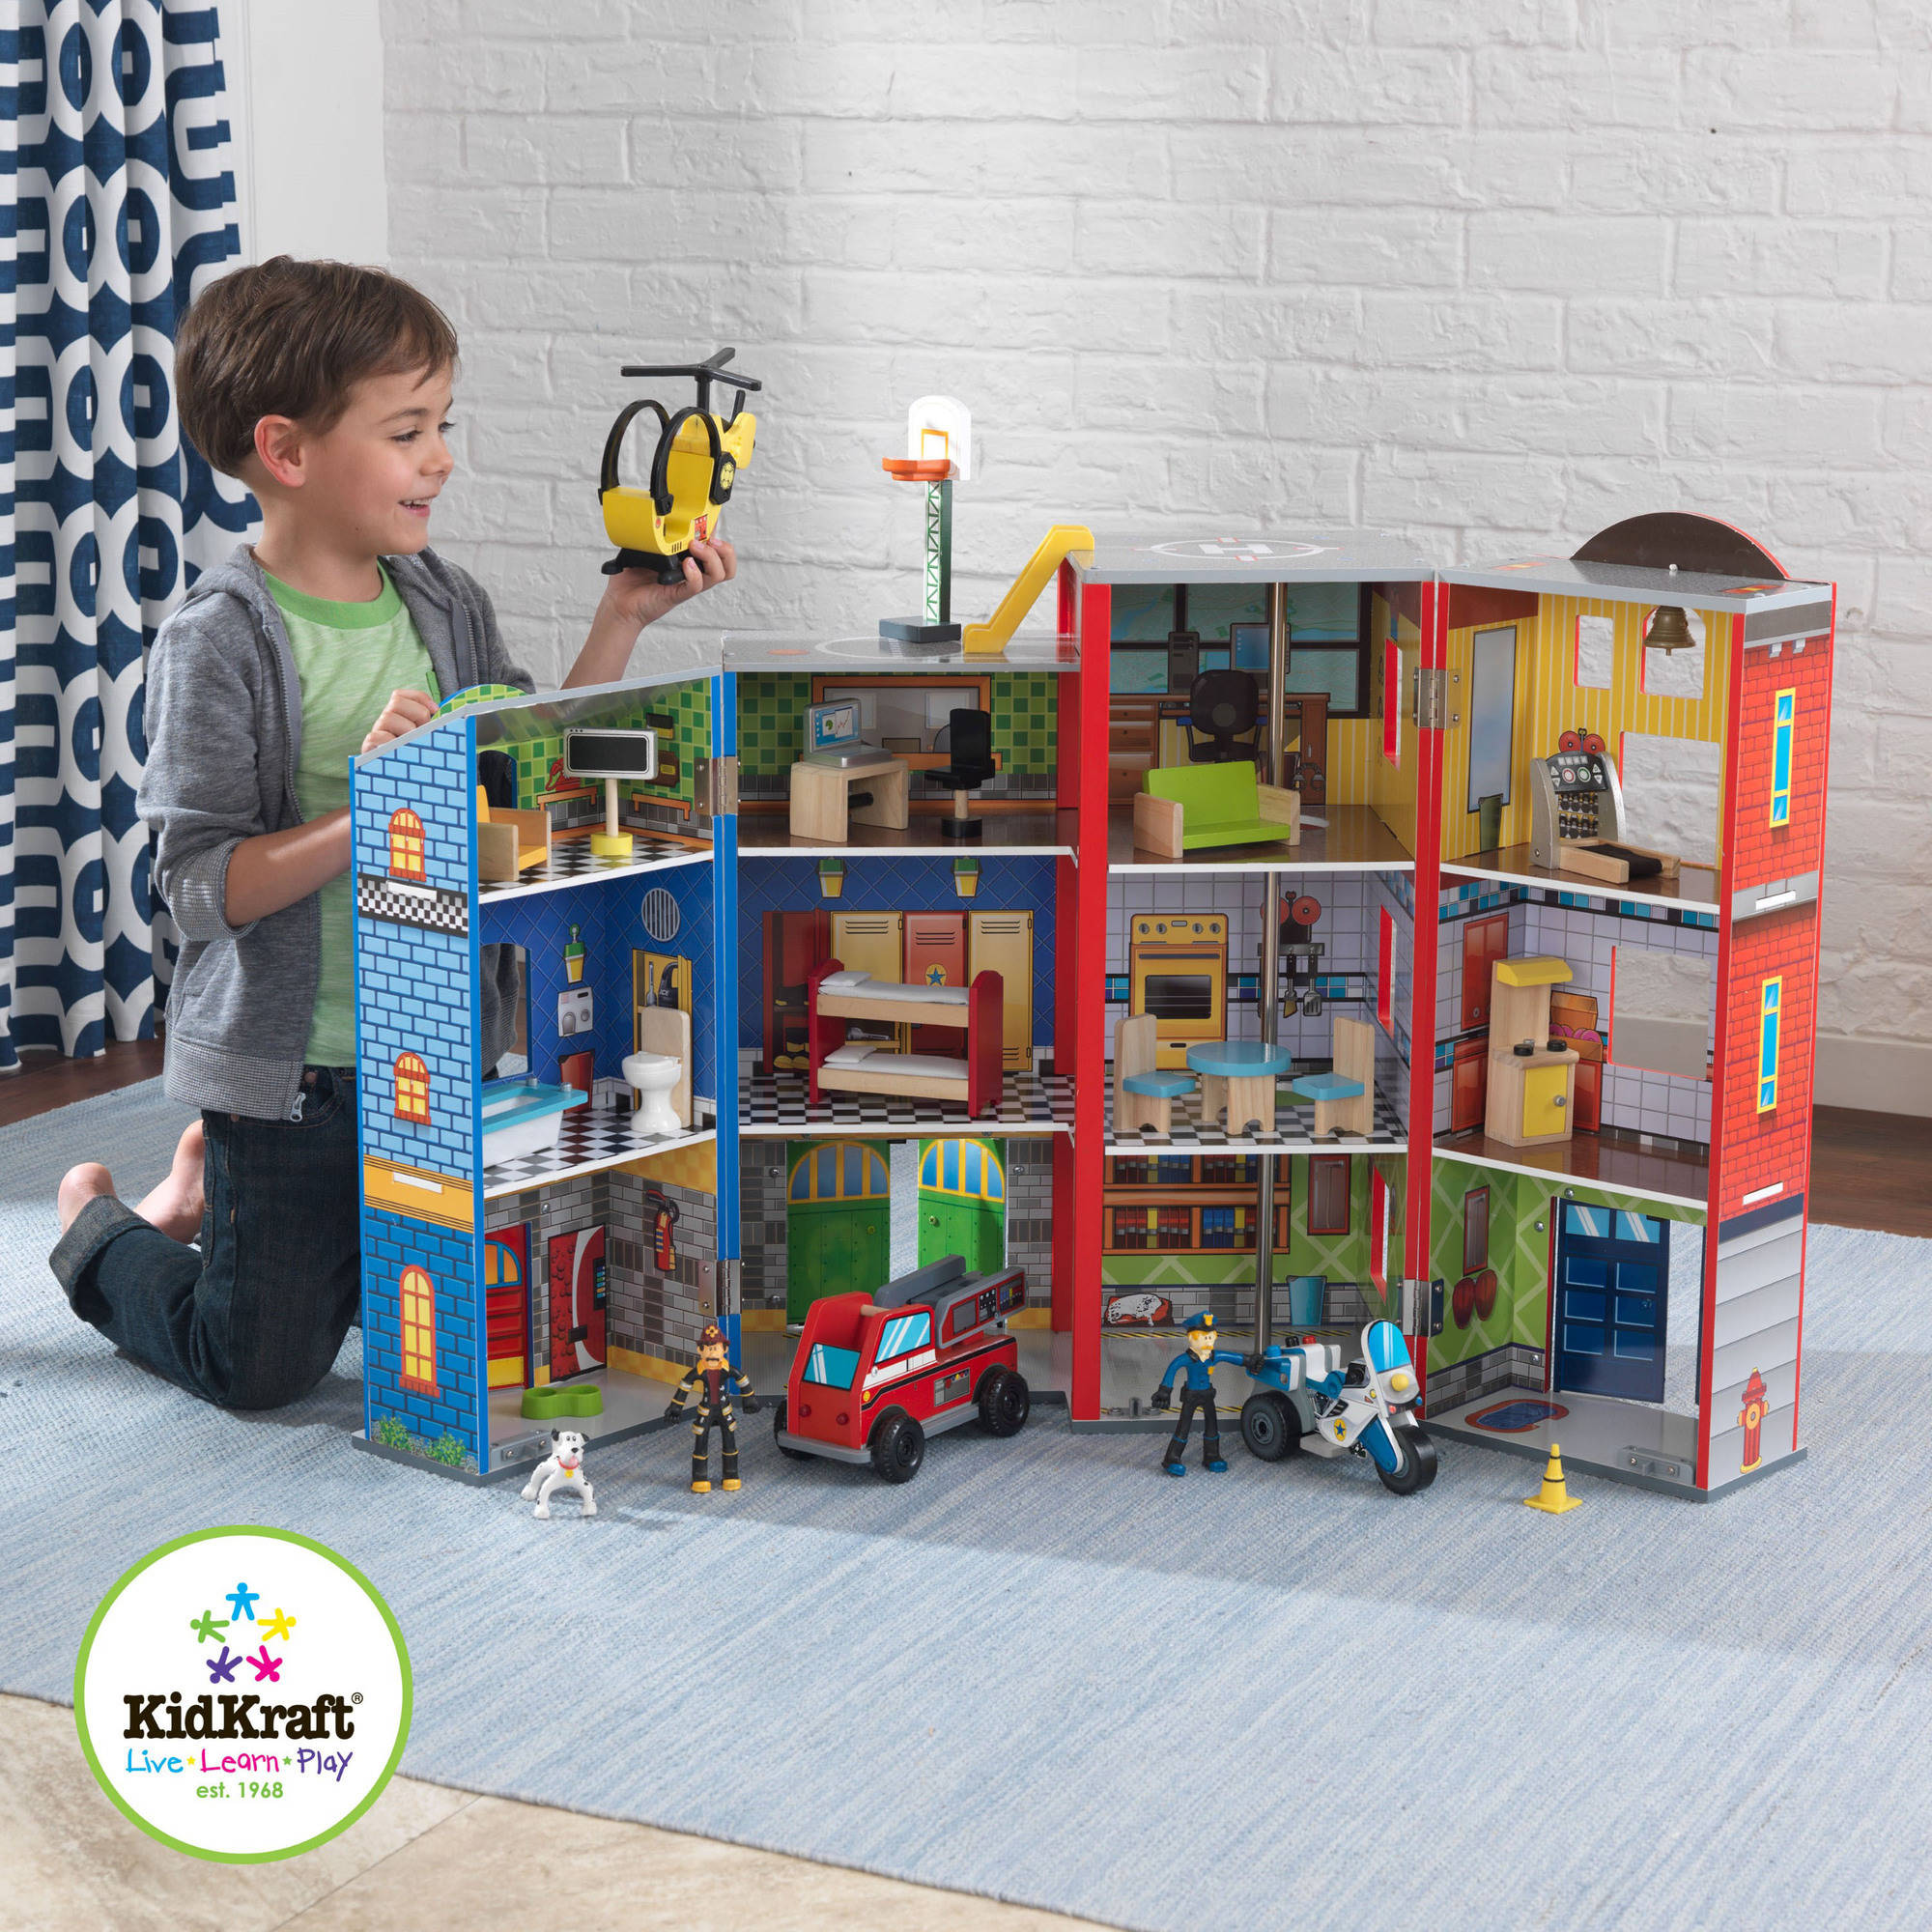 KidKraft Everyday Heroes Police and Fire Firefighters Play Set